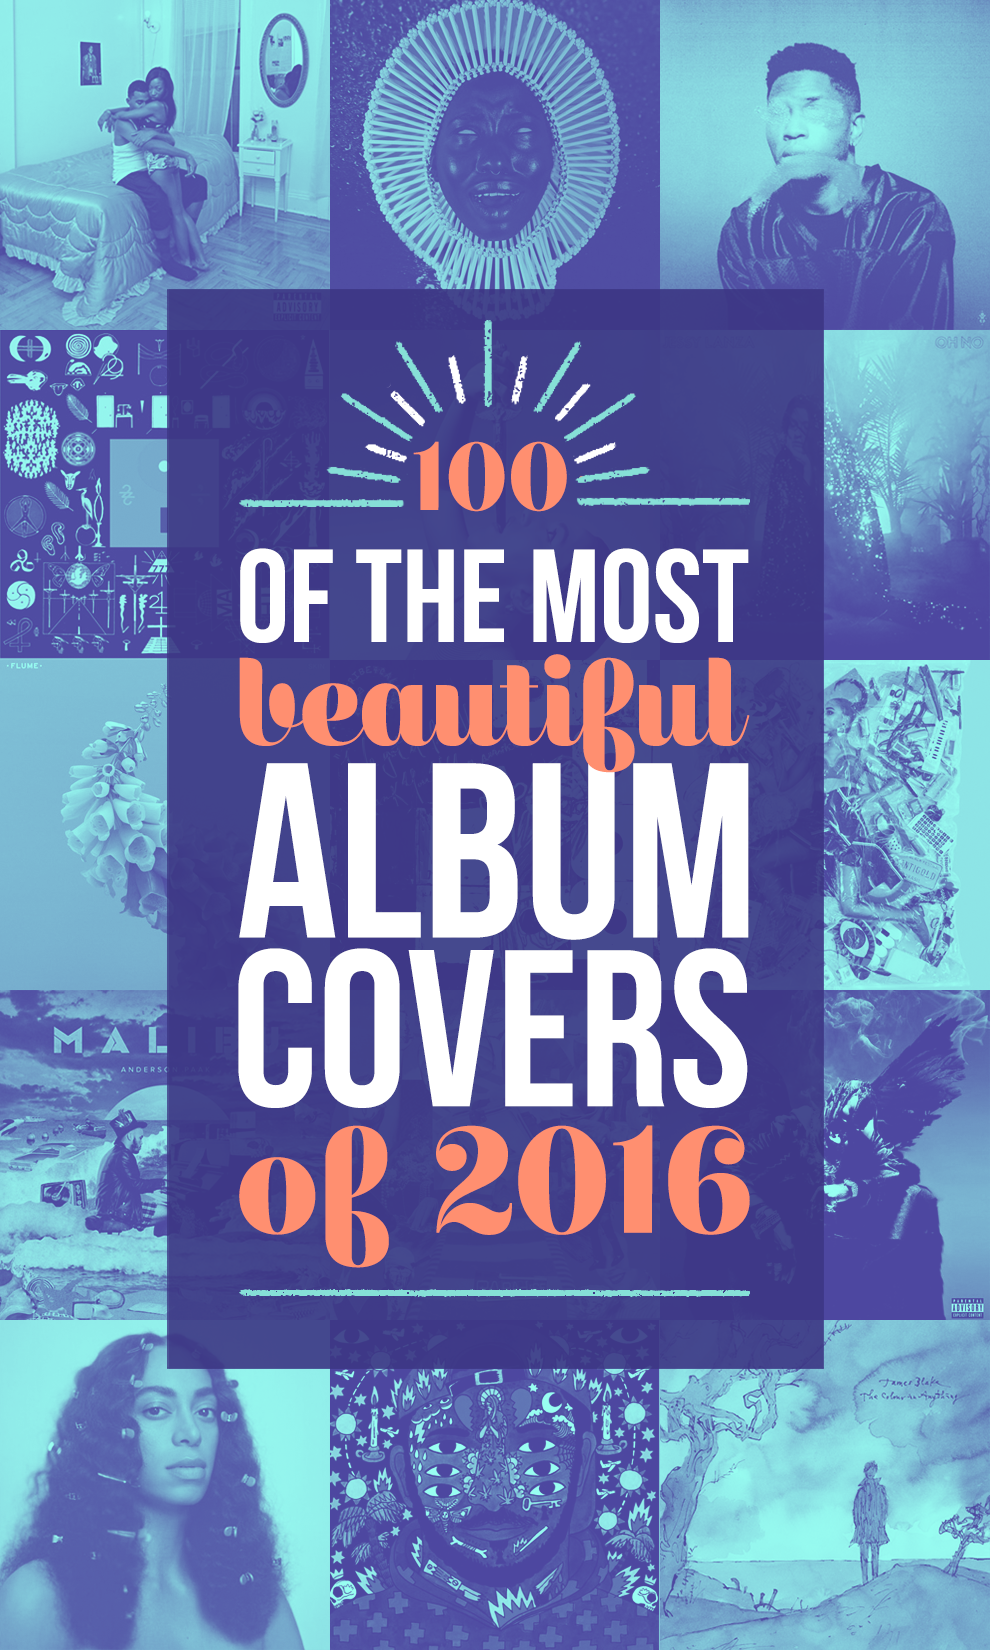 100 Album Covers From 2016 That Will Leave You Speechless Album Covers Cool Album Covers Chance The Rapper